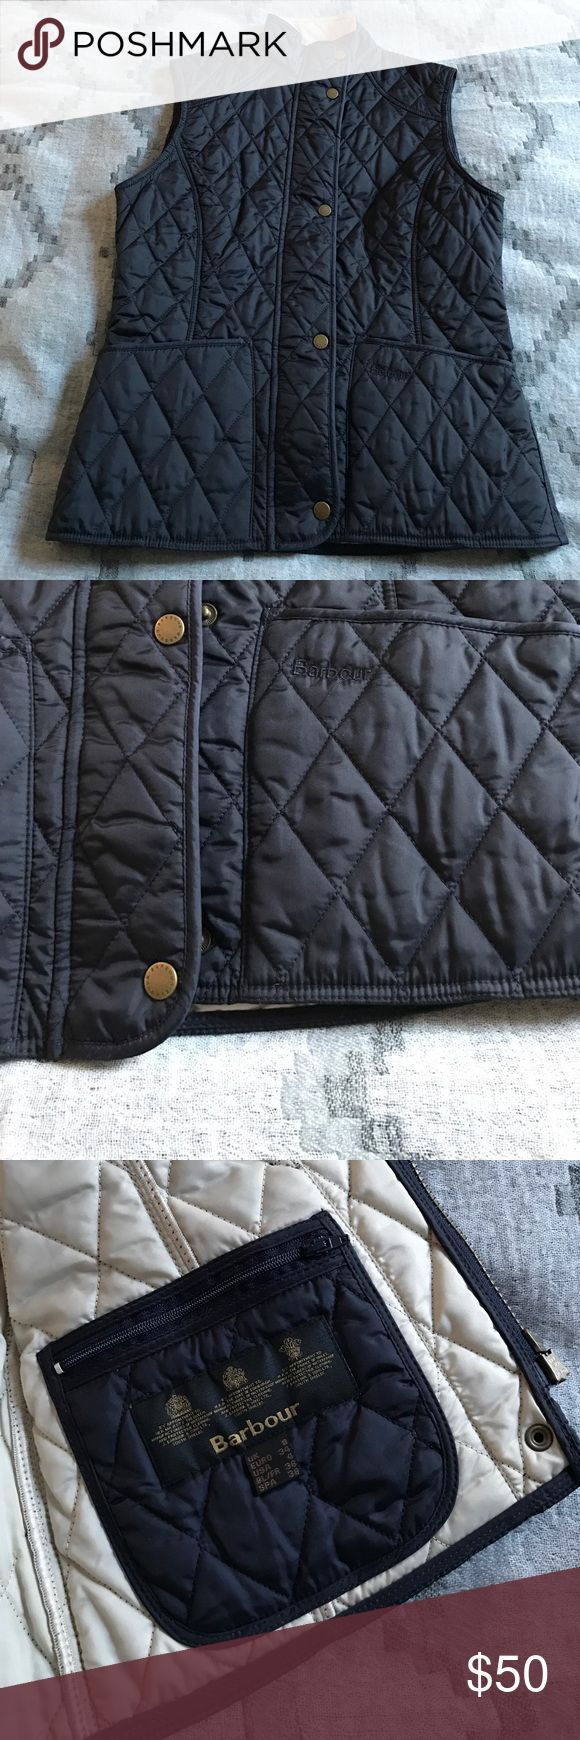 "Barbour Ladies Summer Liddesdale vest navy, US 4 Navy with cream lining Barbour Ladies Summer Liddesdale vest. Worn once. Size US 4 (runs tts) with snaps at back to taper slightly if desired. Zip and snap closure. Patch pockets with navy ""Barbour"" logo embroidery. Barbour Jackets & Coats Vests"